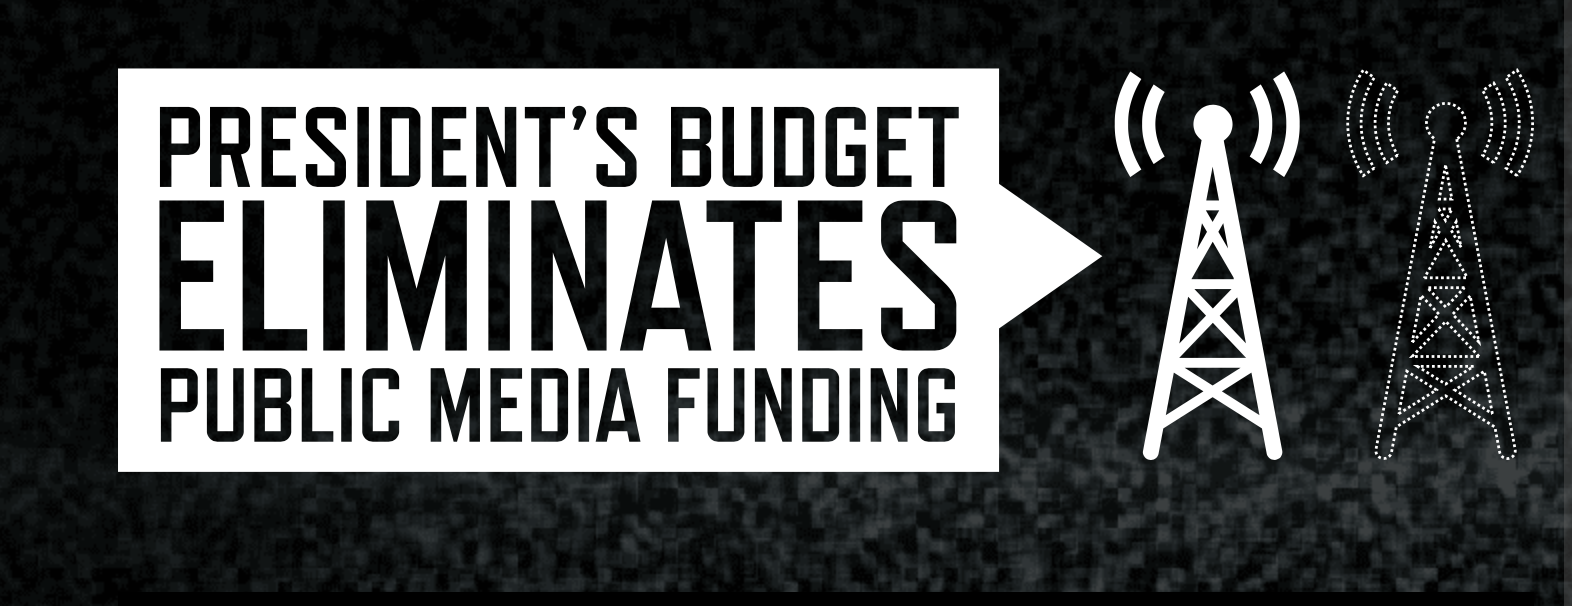 Funding for public broadcasting targeted for elimination wemu the administrations fy 2018 budget blueprint released yesterday proposes to elimnate the corporation for public broadcasting cpb end future funding for malvernweather Gallery